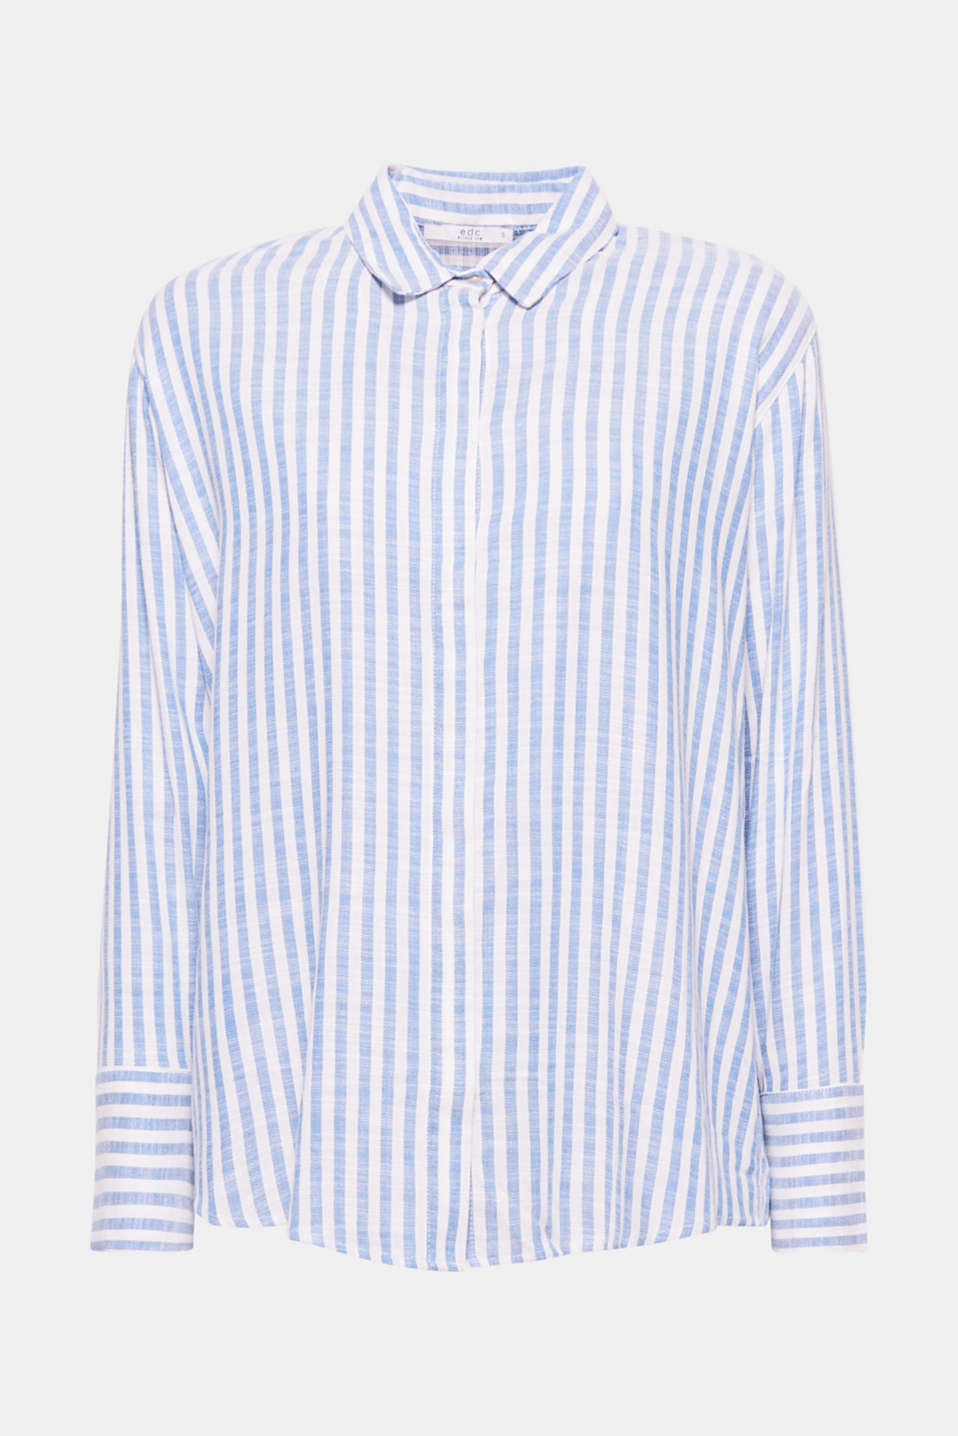 This casually cut shirt blouse with vertical stripes and a concealed button placket is a casual favourite